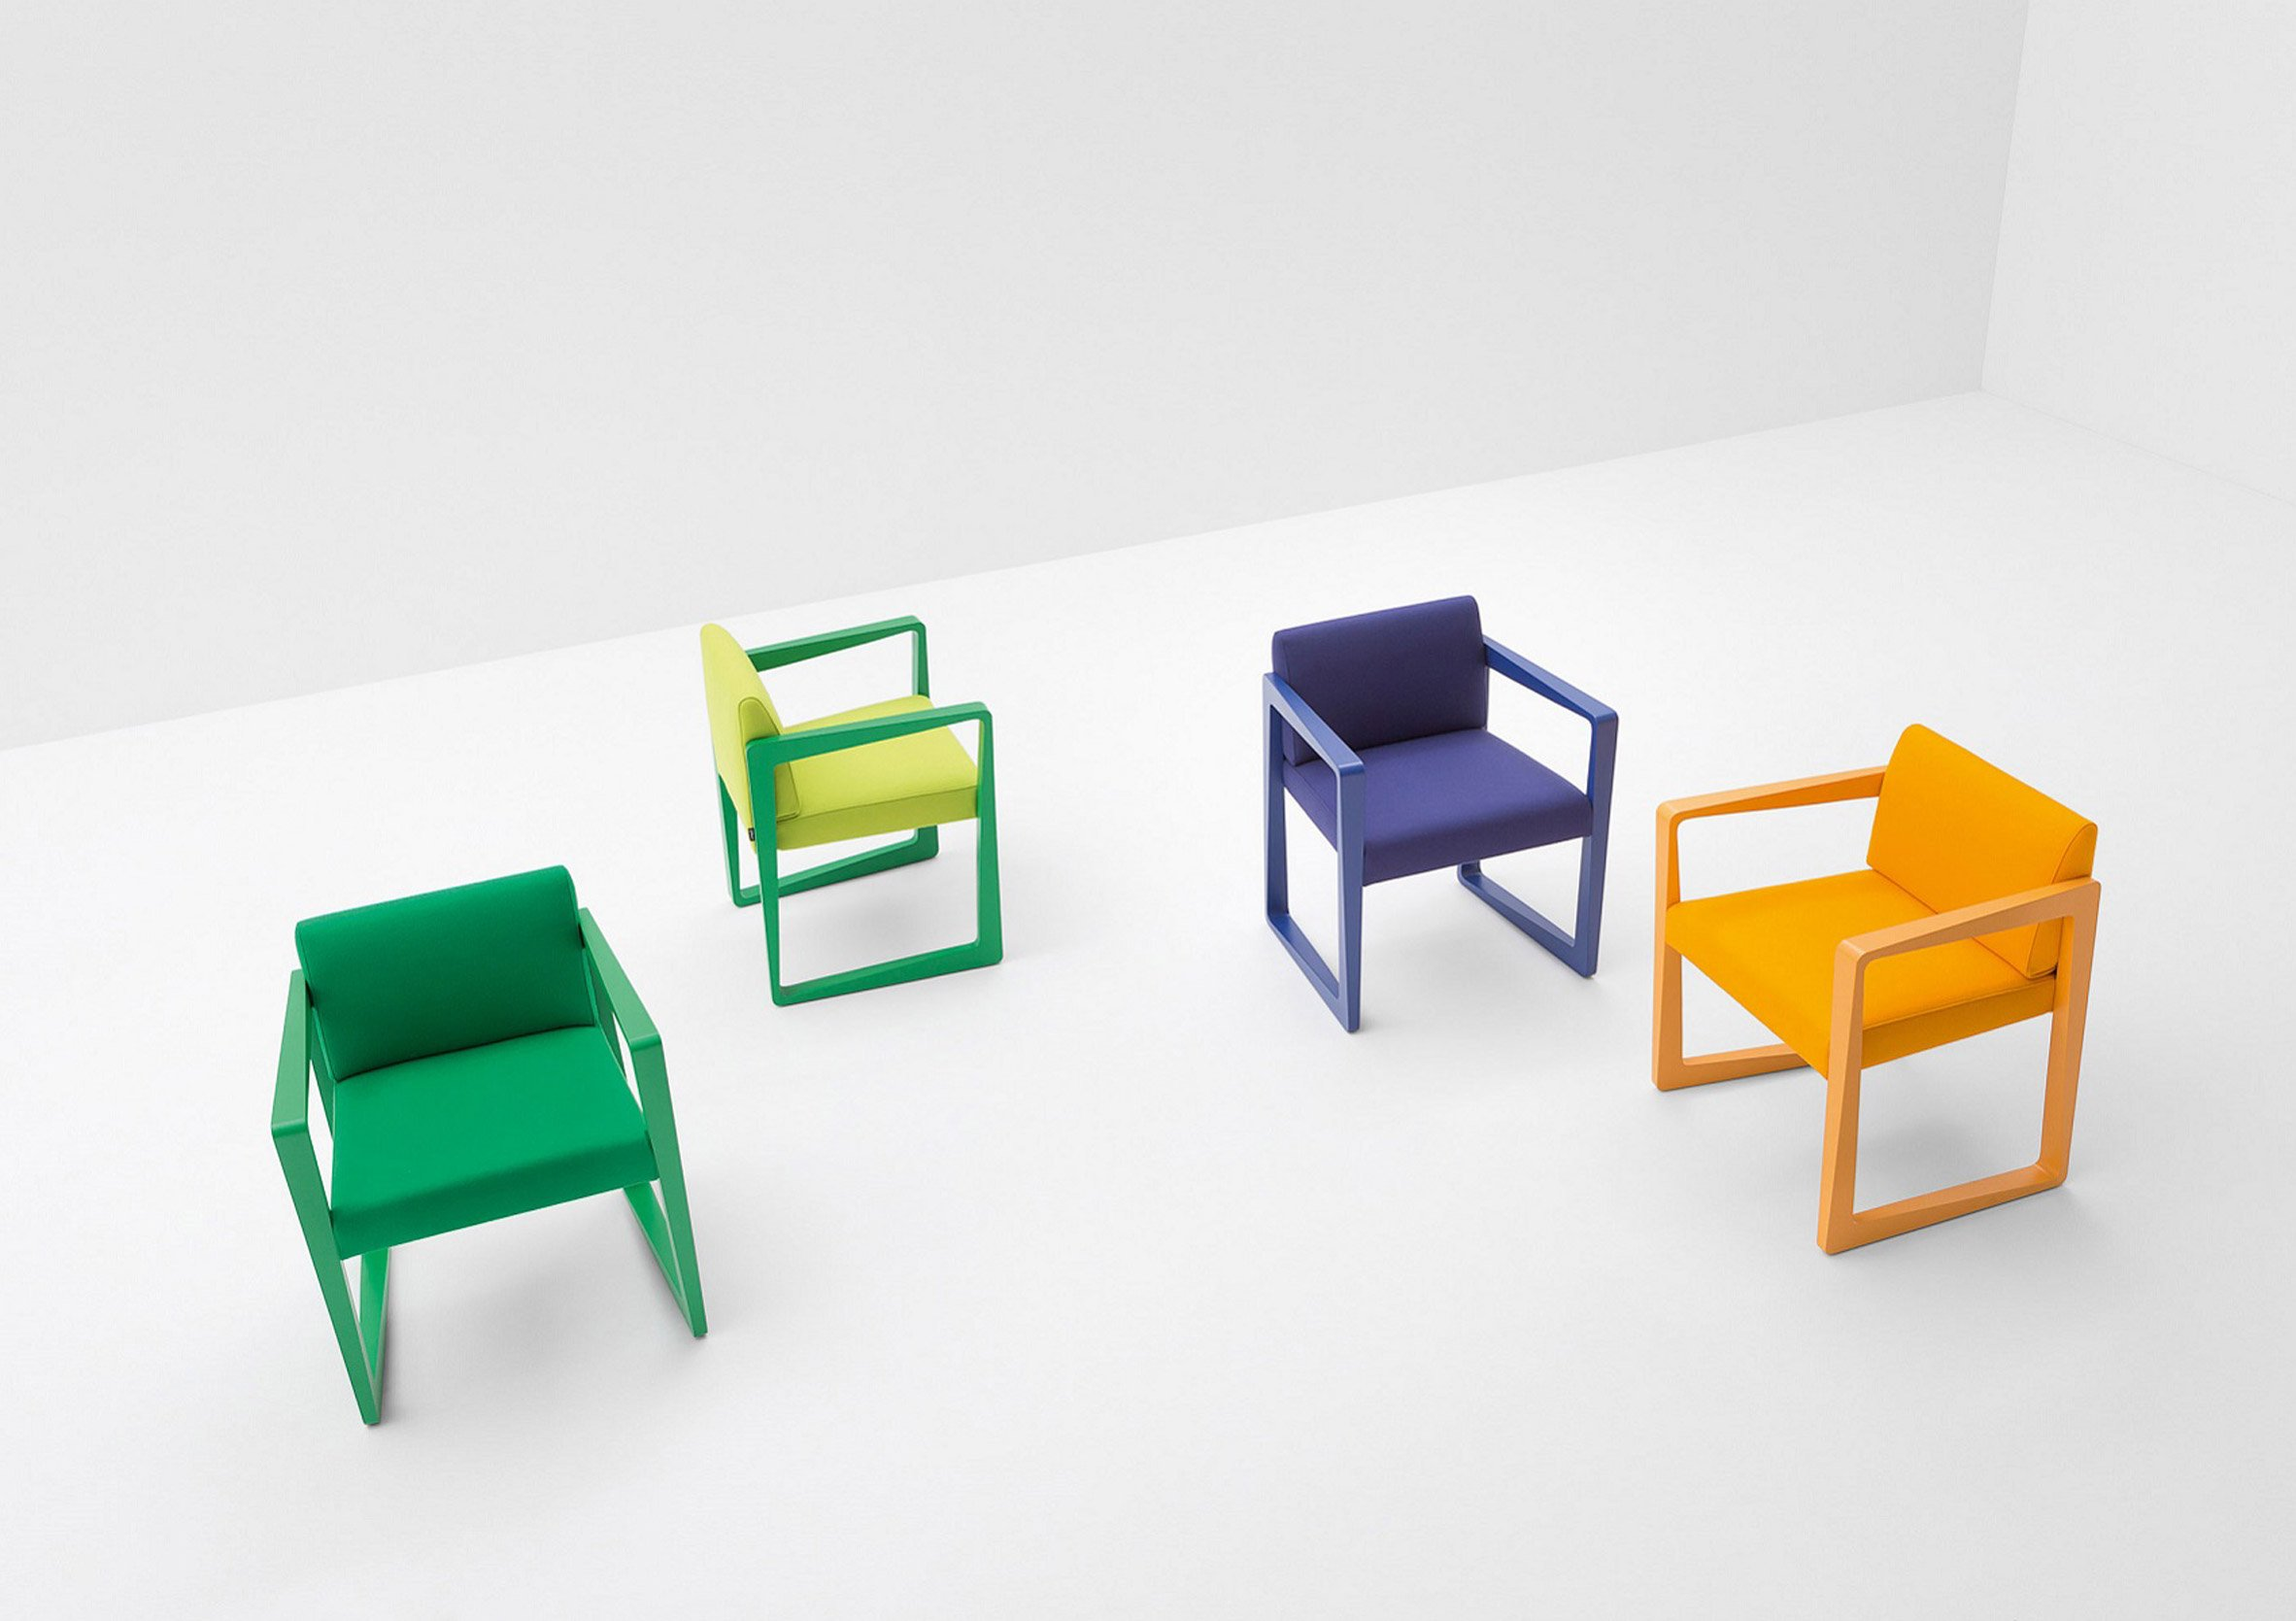 Askew chair in green, yellow, blue and orange colours